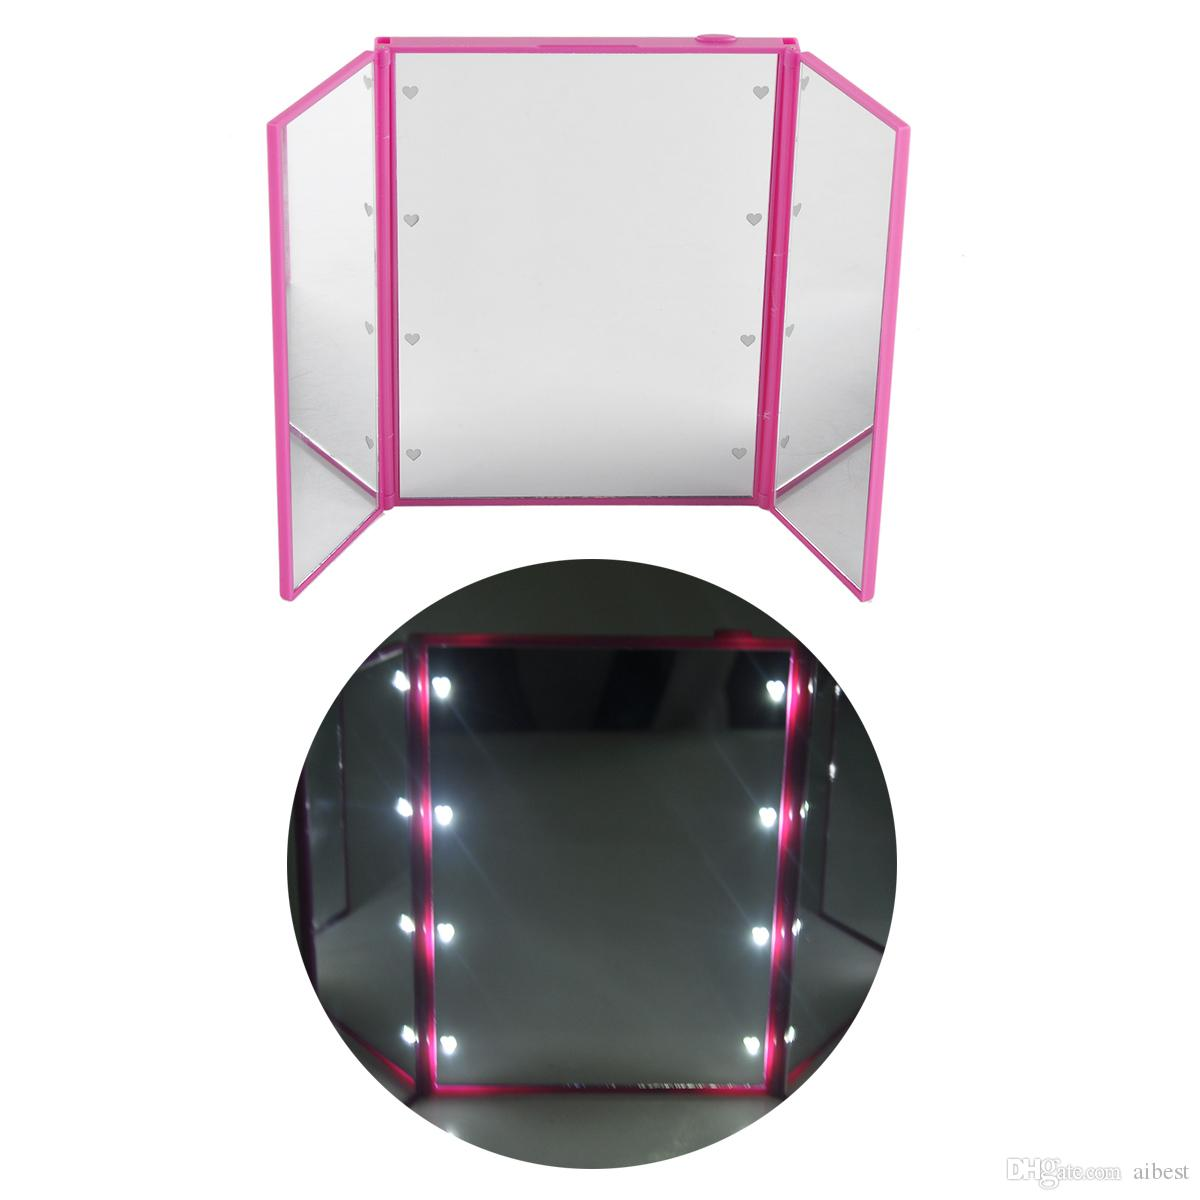 8 LED makeup mirror LED make up mirror foldable inside battery mini foldable Portable Folding Compact Cosmetic with LED Light retail box